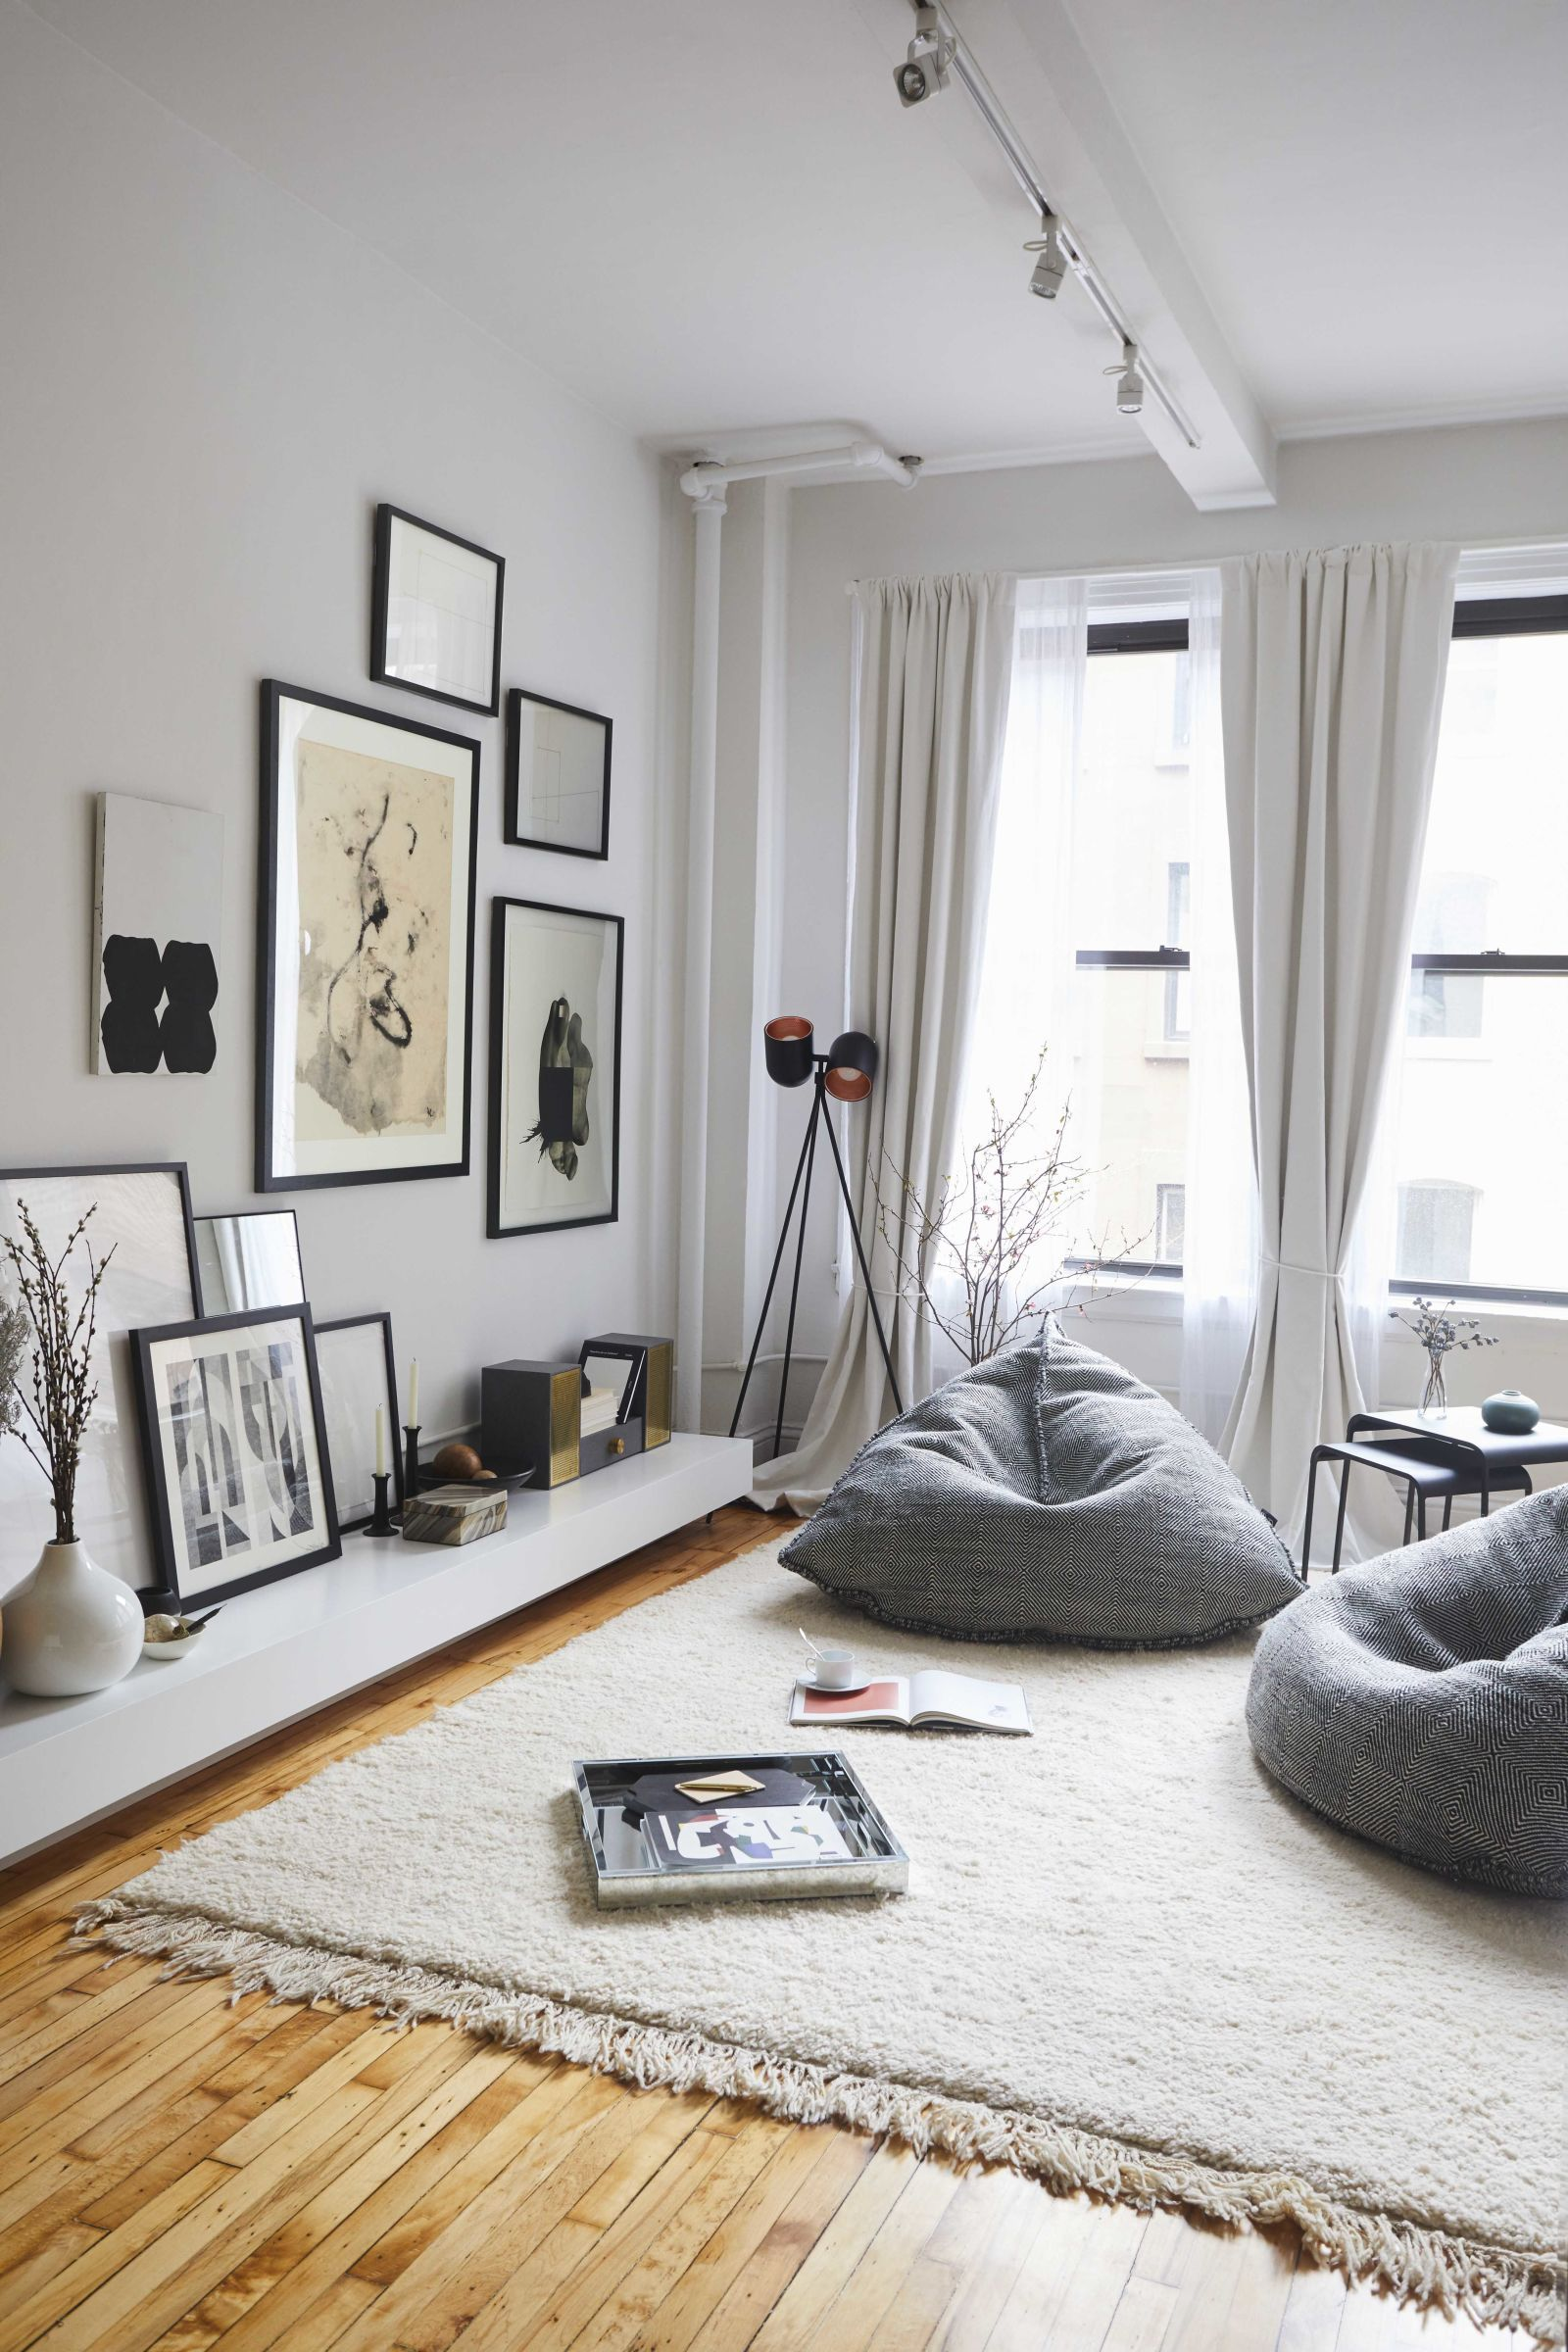 This coupleus insanely chic apartment is also their storefront